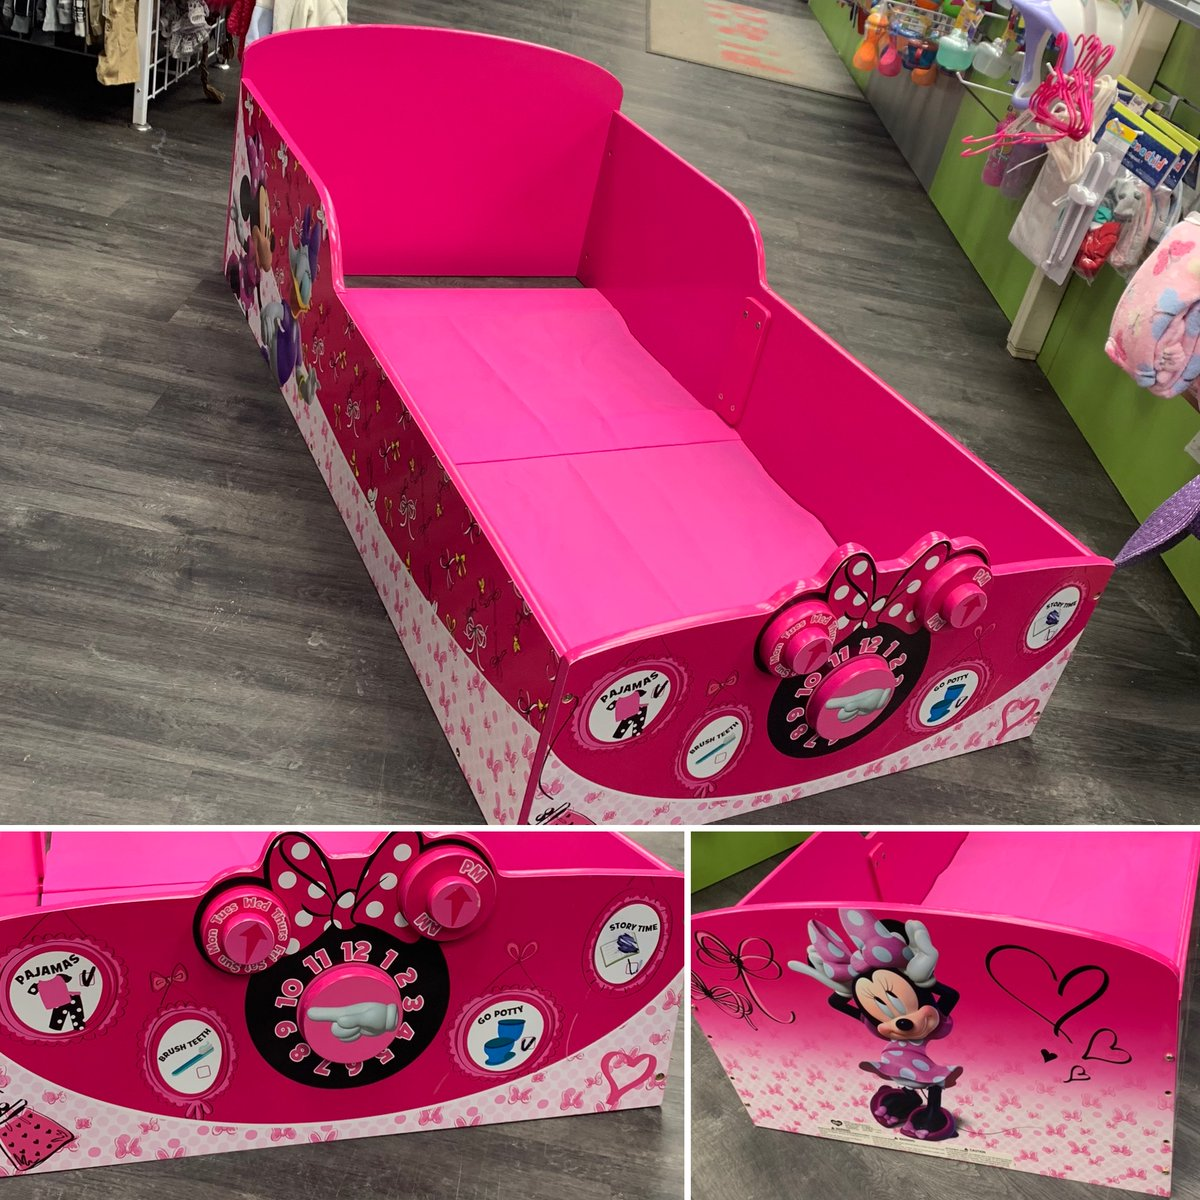 Adorable, wooden, Minnie toddler bed!! Only $40. Retails new for $100!    call to hold! 720-288-0246  Bring your assembled toddler bed in for a quote today!! #savemore #furniture #toddlerbed #minnie #kidsstuff #pink #coloradokids #bed #nightnight #onceuponachildaurorapic.twitter.com/0rqz4G5j9V